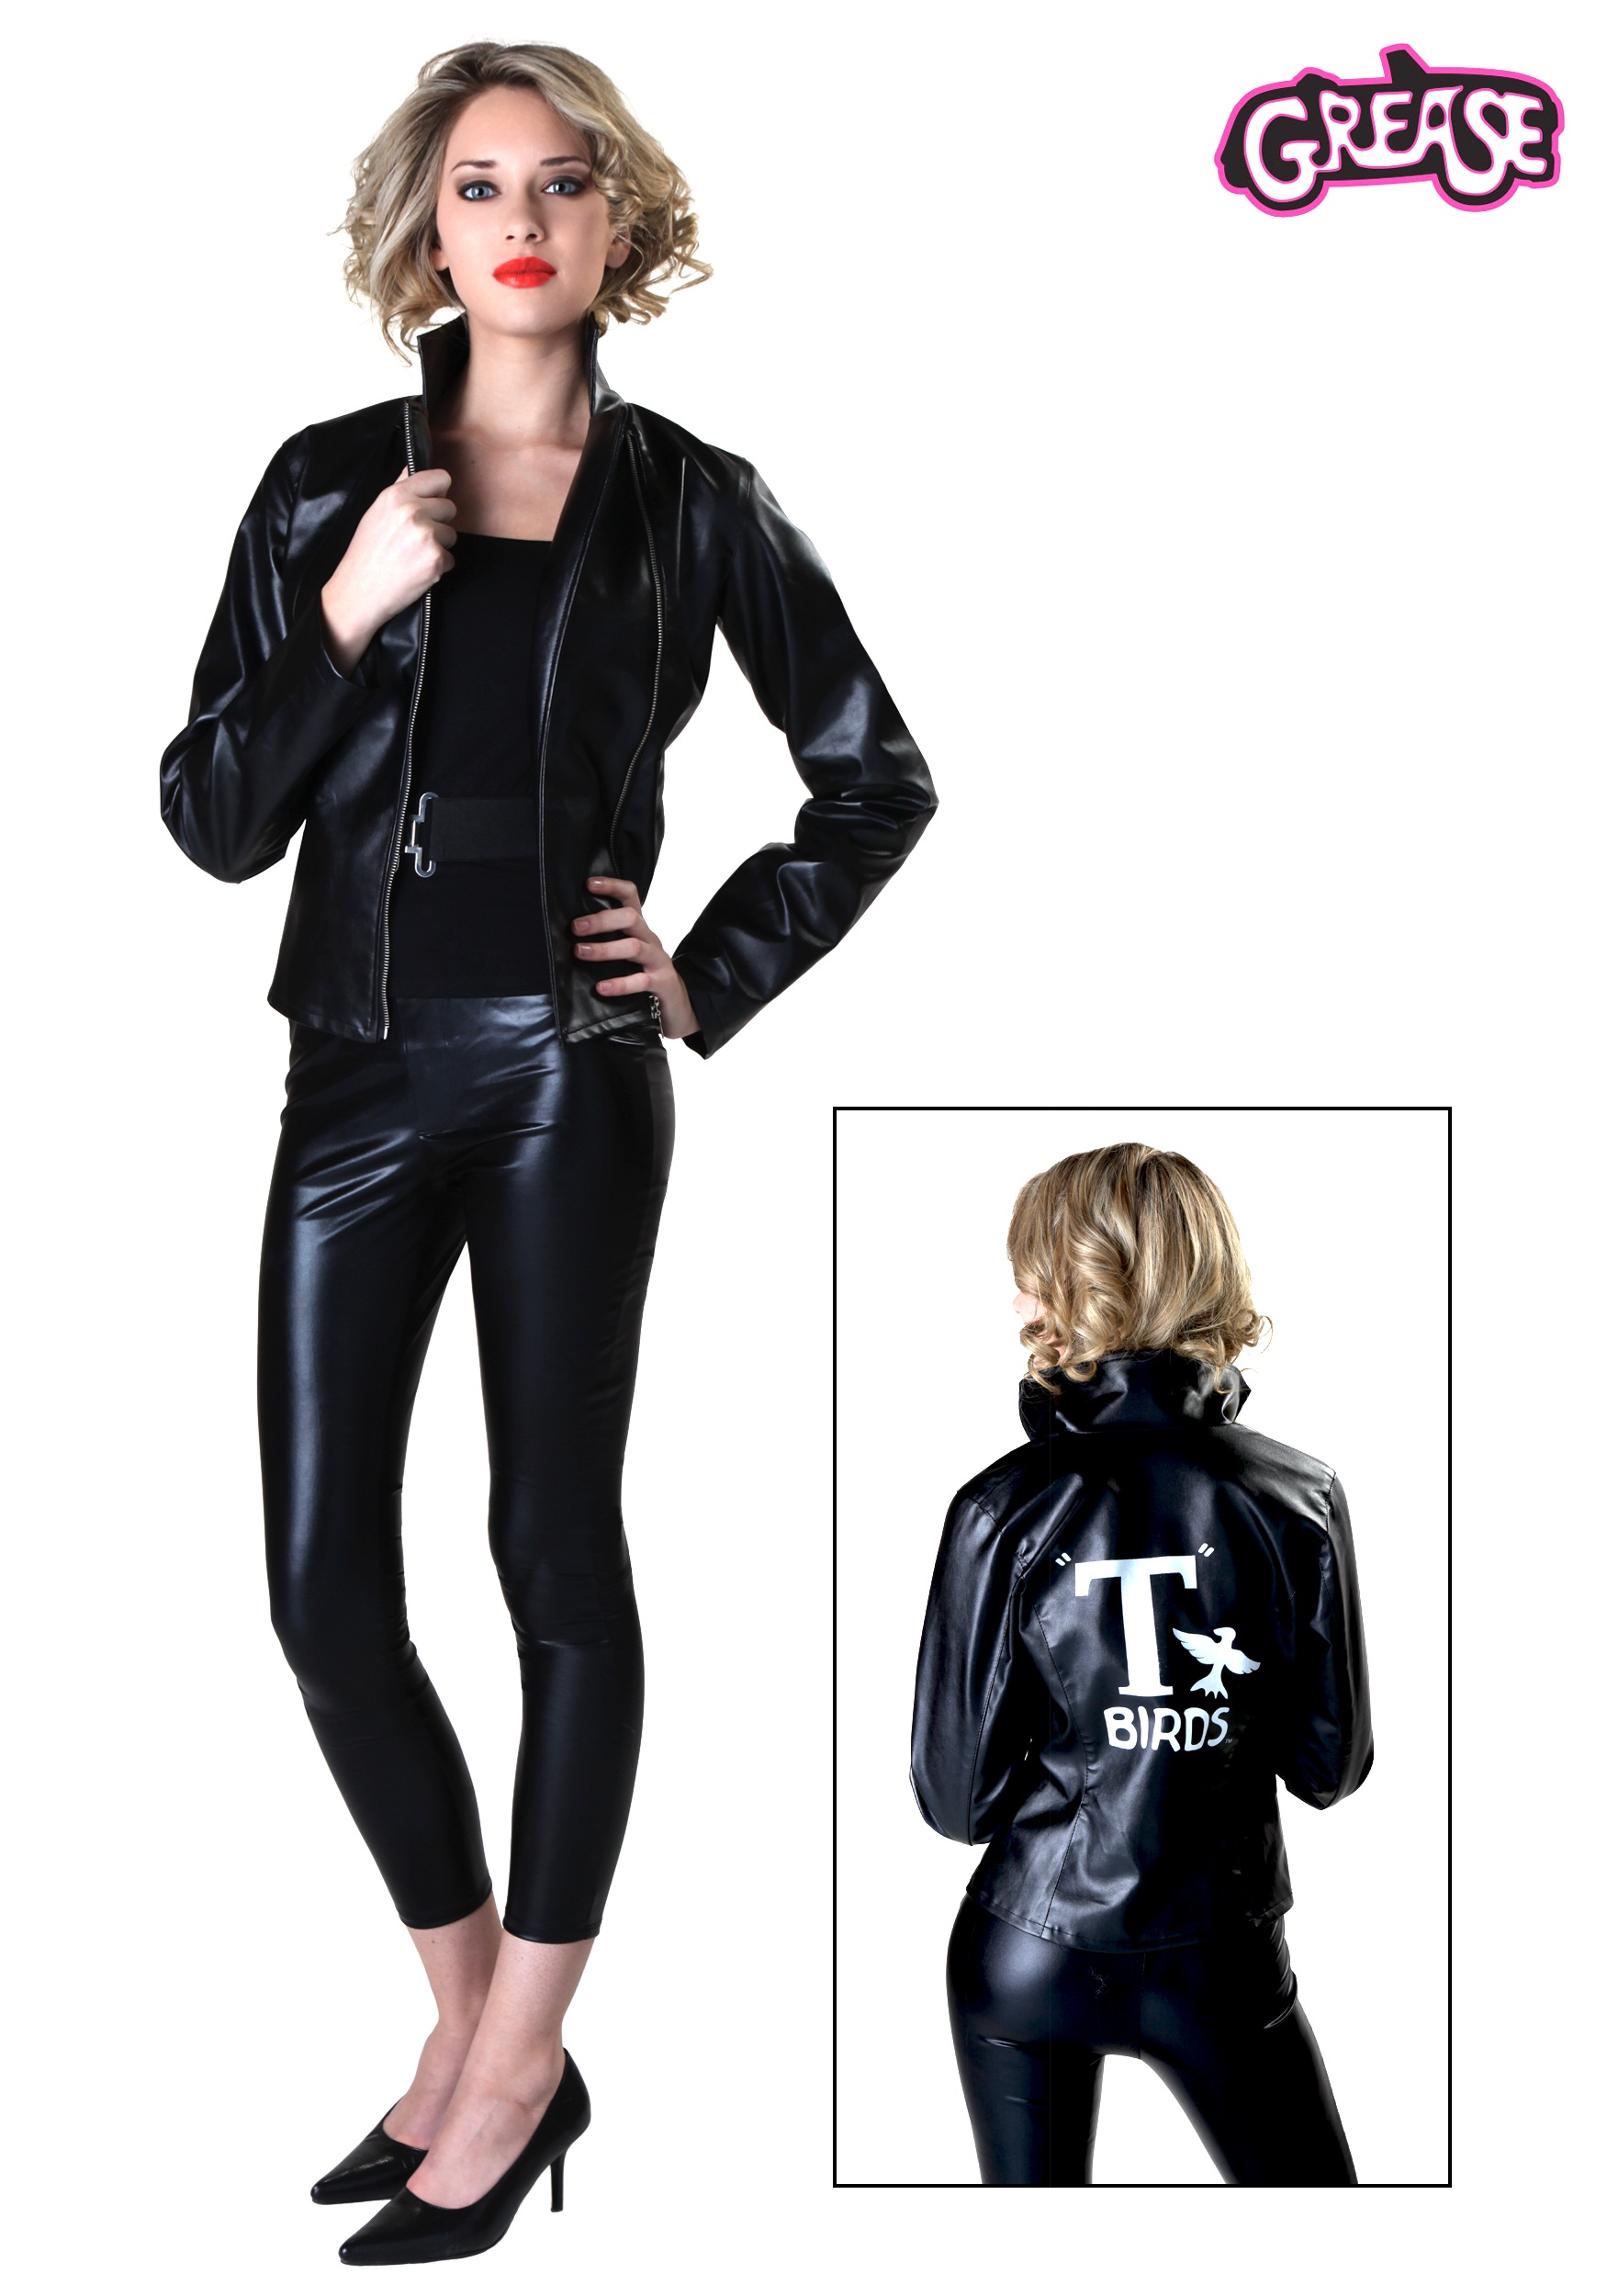 perfect grease girl outfit costume